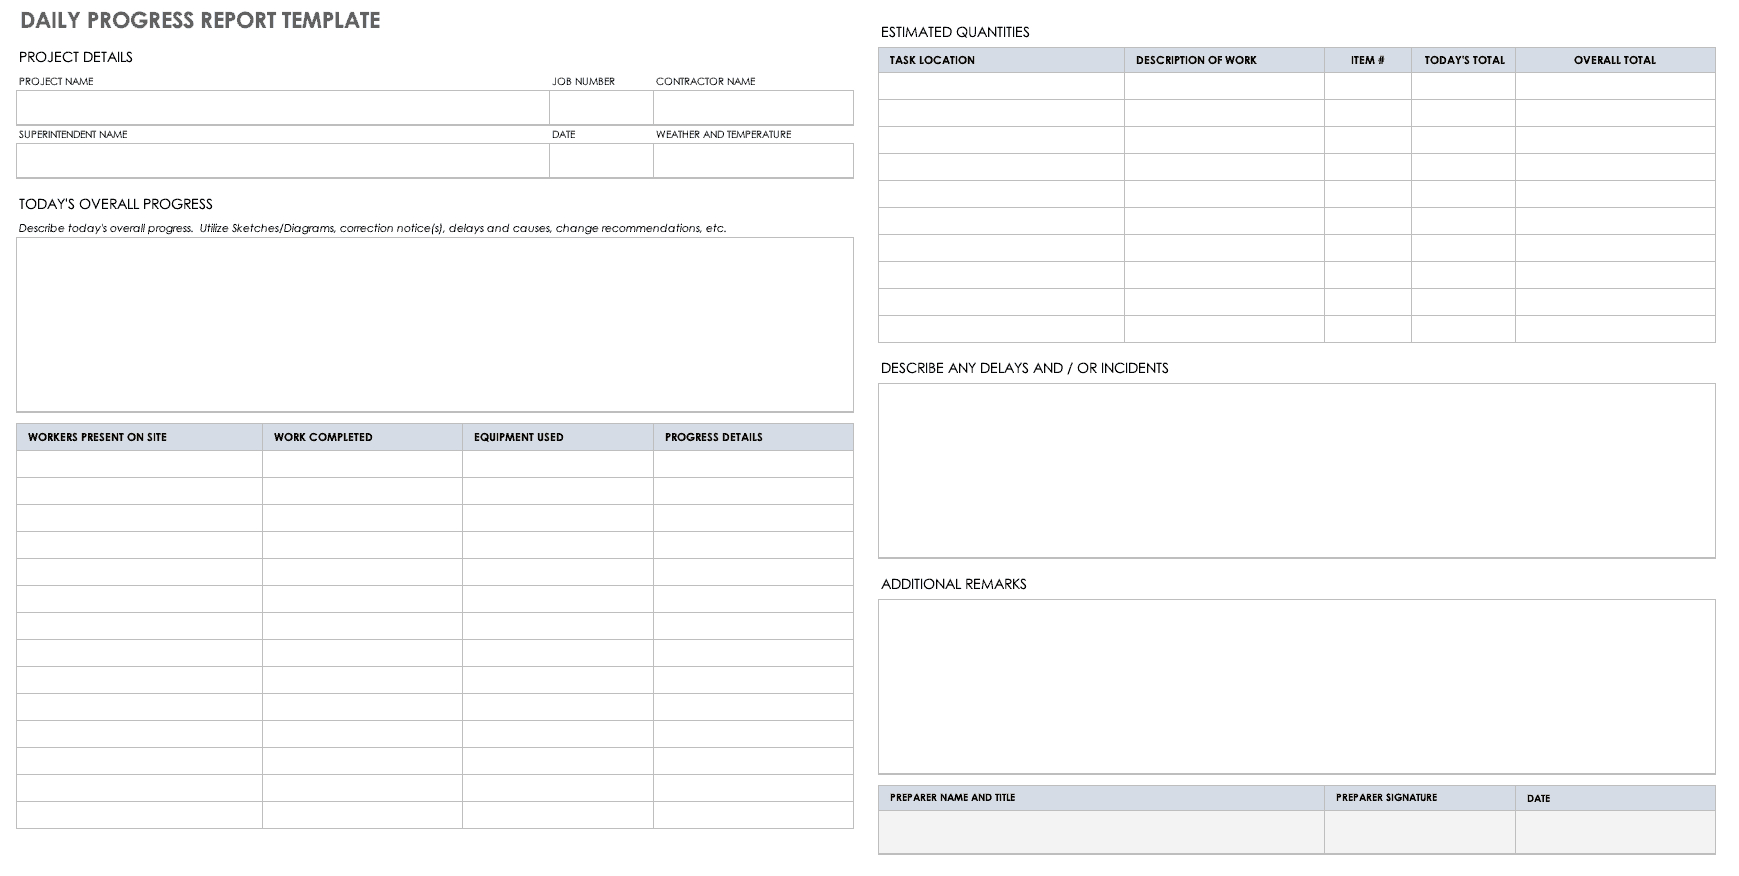 010 Template Ideas Ic Daily Project Progress Report Format Throughout Daily Project Status Report Template